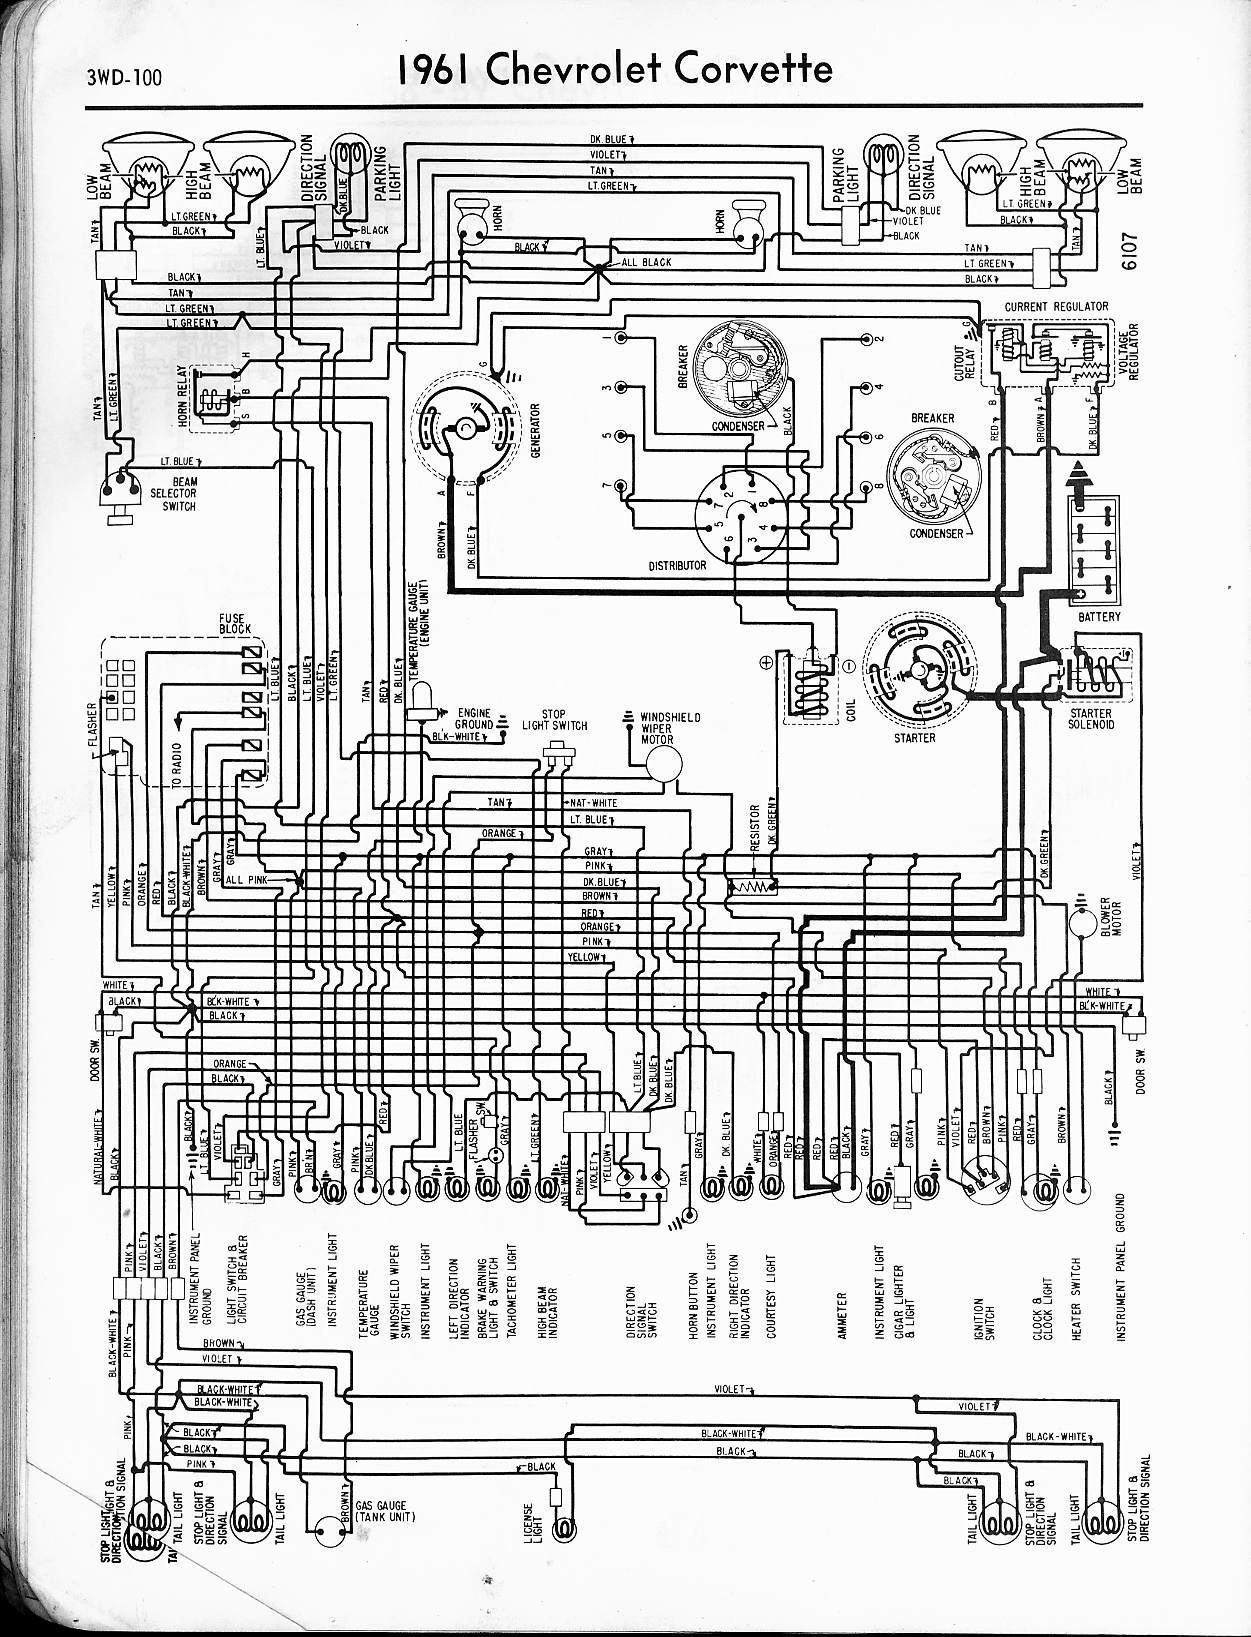 hight resolution of corvette wiring diagram wiring diagram todays57 65 chevy wiring diagrams th350 wiring diagram corvette wiring diagram